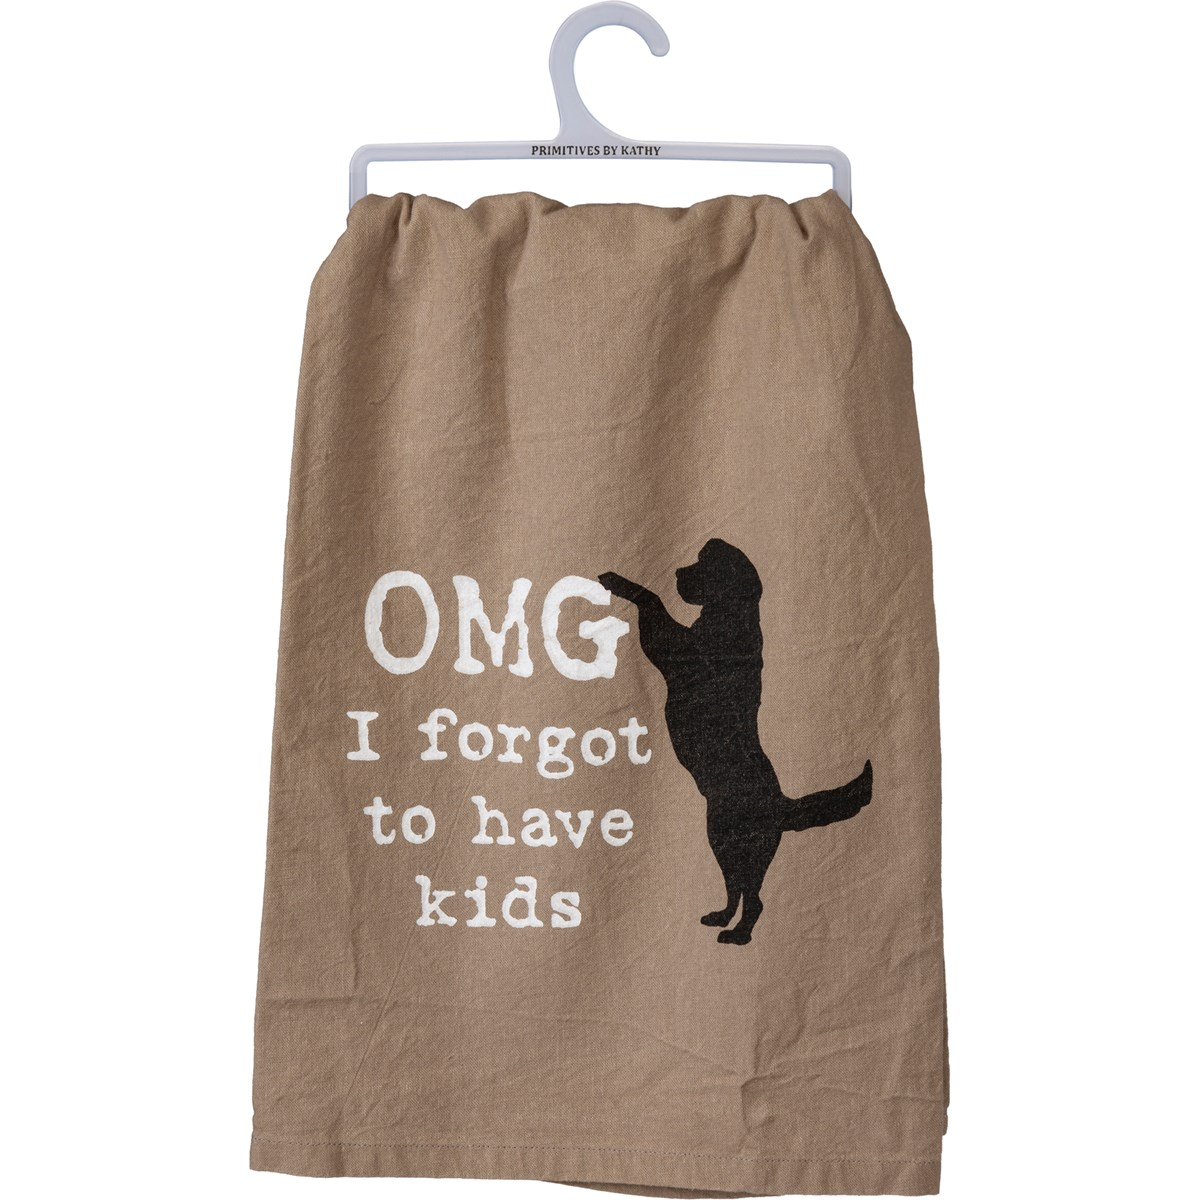 "Dish Towel - OMG I Forgot To Have Kids - 28"" x 28"" - Cotton"